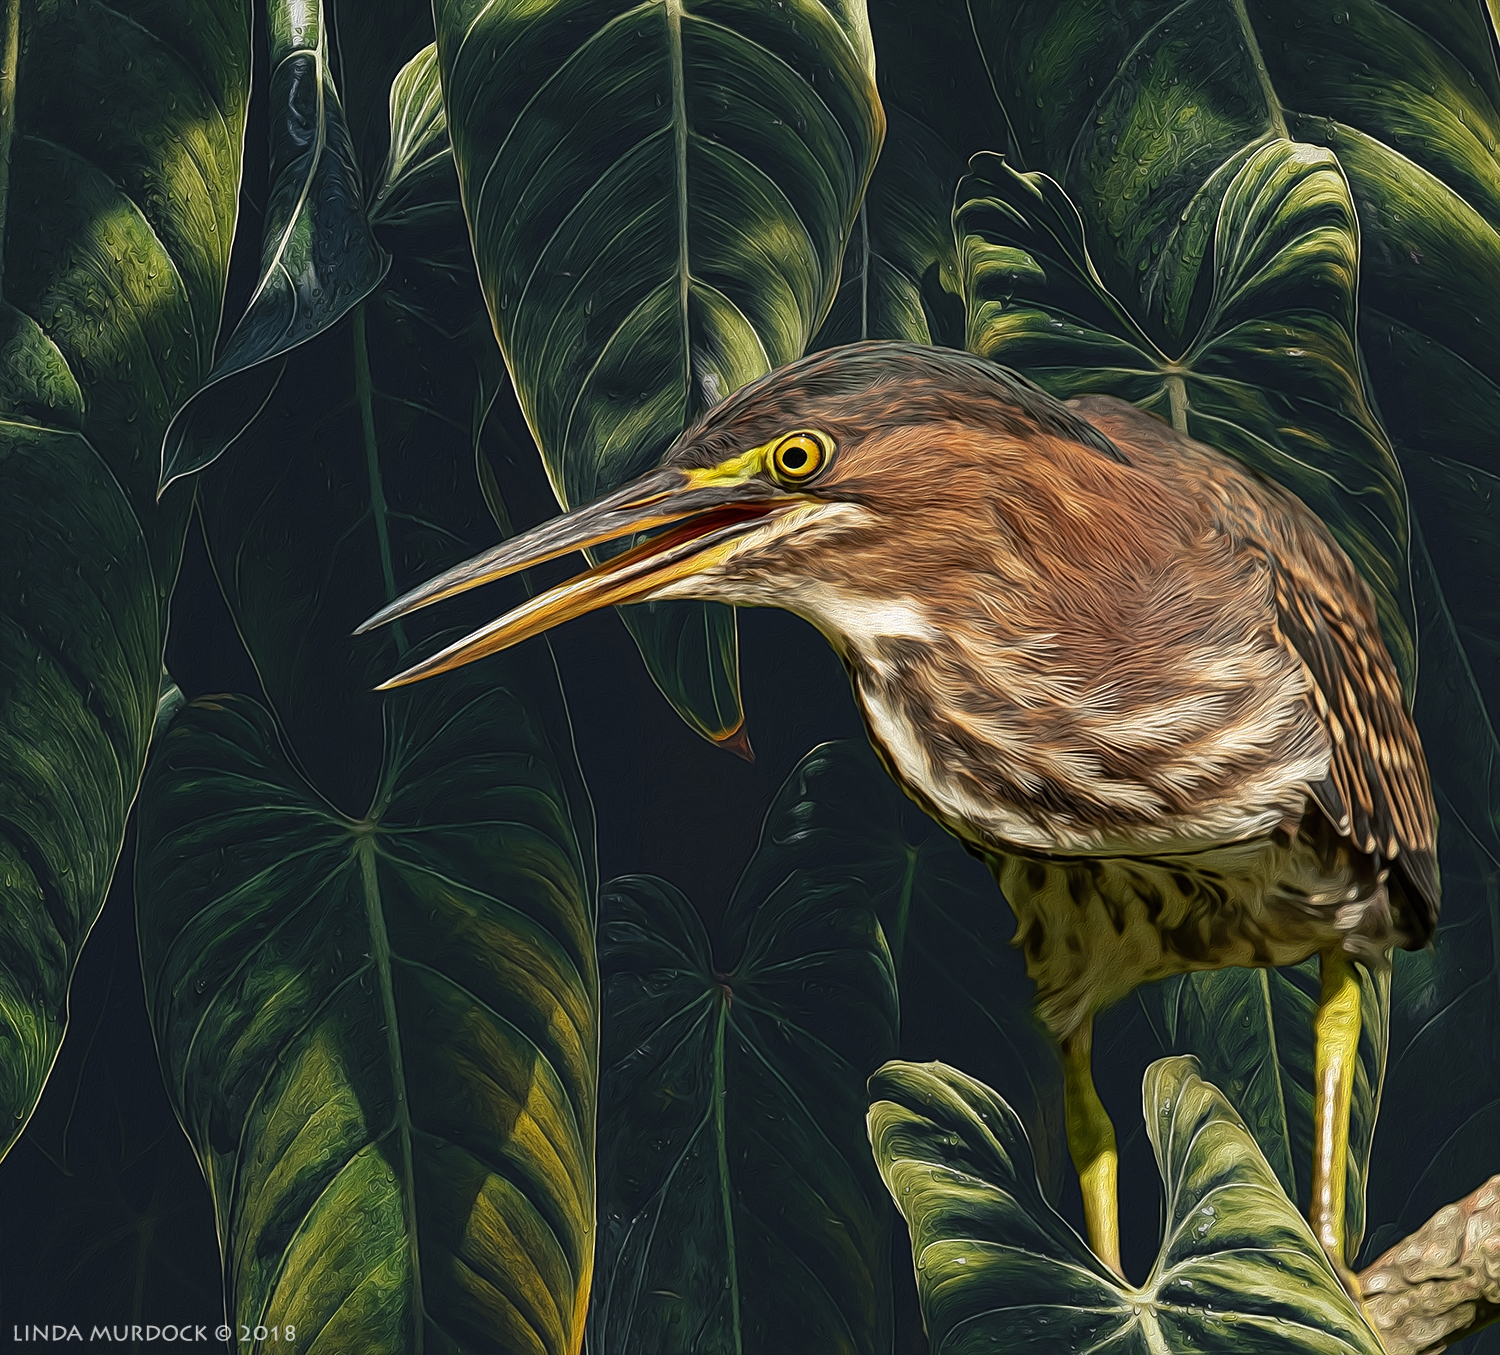 Green Heron in new habitat and enhanced with Topaz Glow and Photoshop Oil Paint